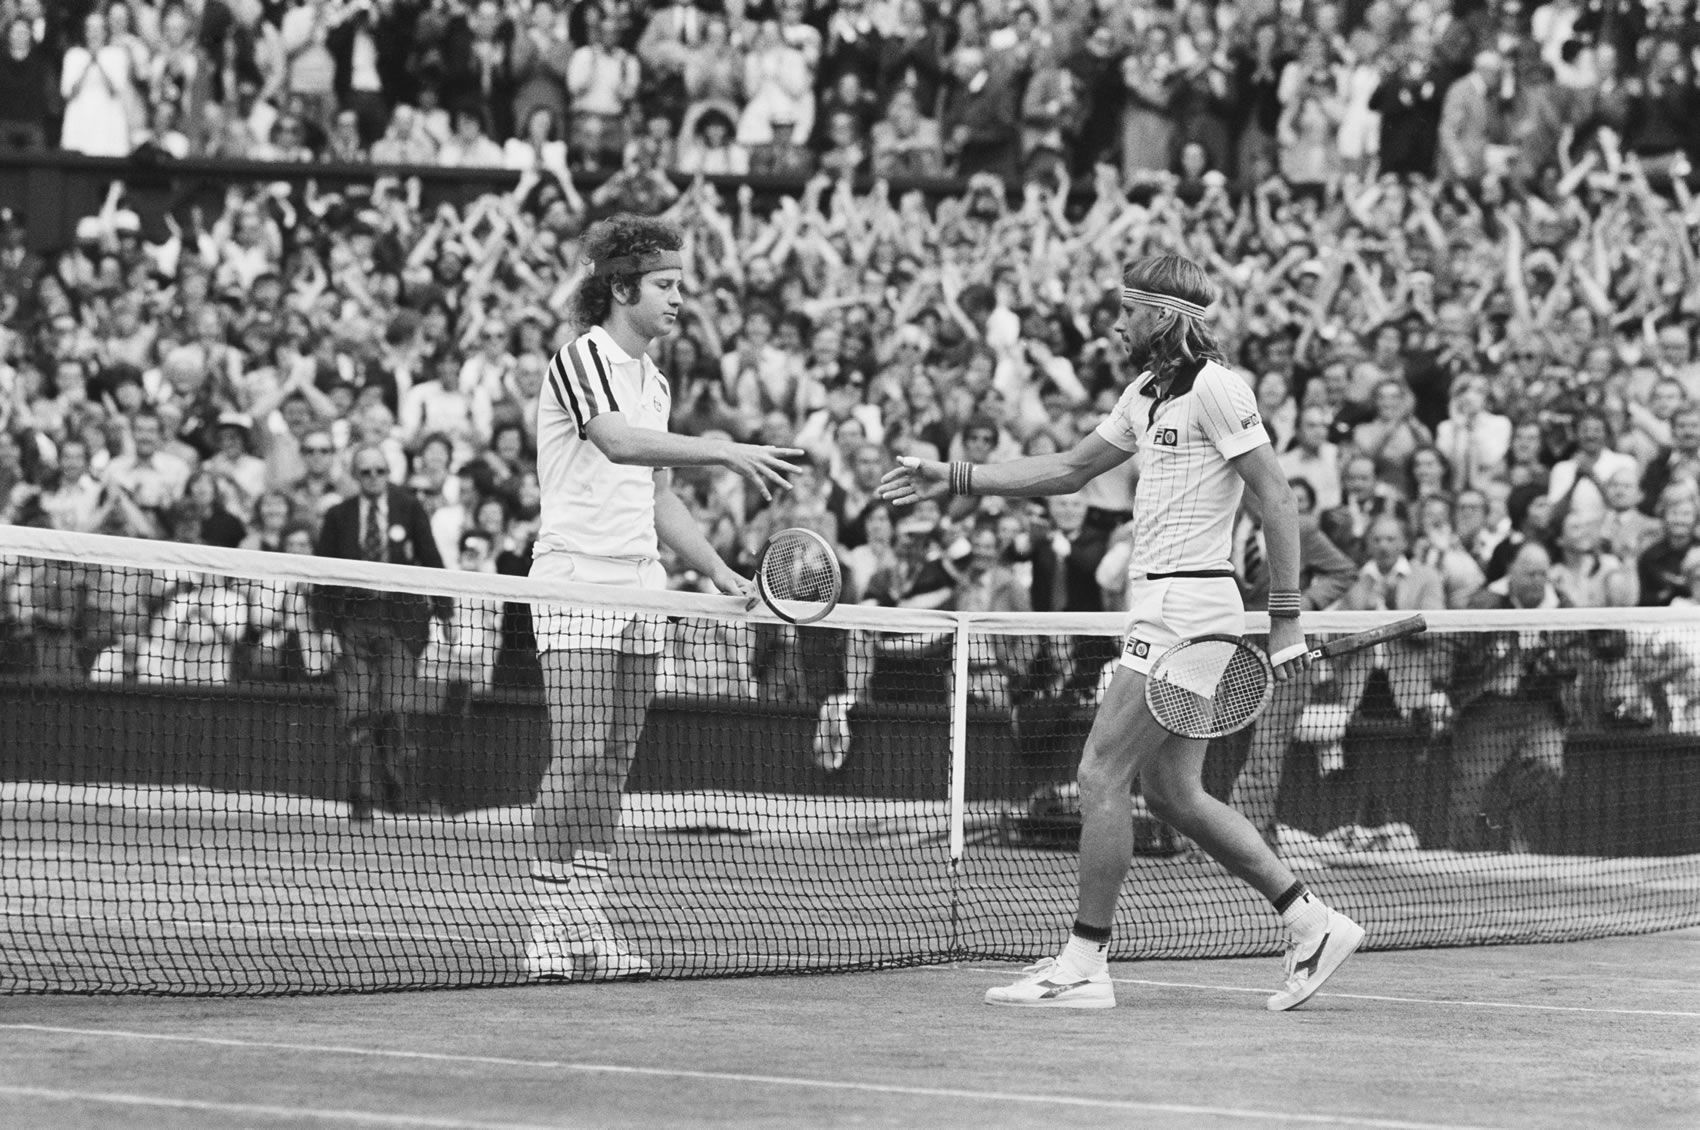 Björn Borg and John McEnroe Swedish tennis player Bjorn Borg (right) shakes hands over the net with American tennis player John McEnroe after winning the final of the Men's Singles tournament, 1-6, 7-5, 6-3, 6-7, 8-6 to become champion at the Wimbledon Lawn Tennis Championships at the All England Lawn Tennis Club in Wimbledon, London on 5th July 1980. (Photo by Chris Smith/Popperfoto/Getty Images)